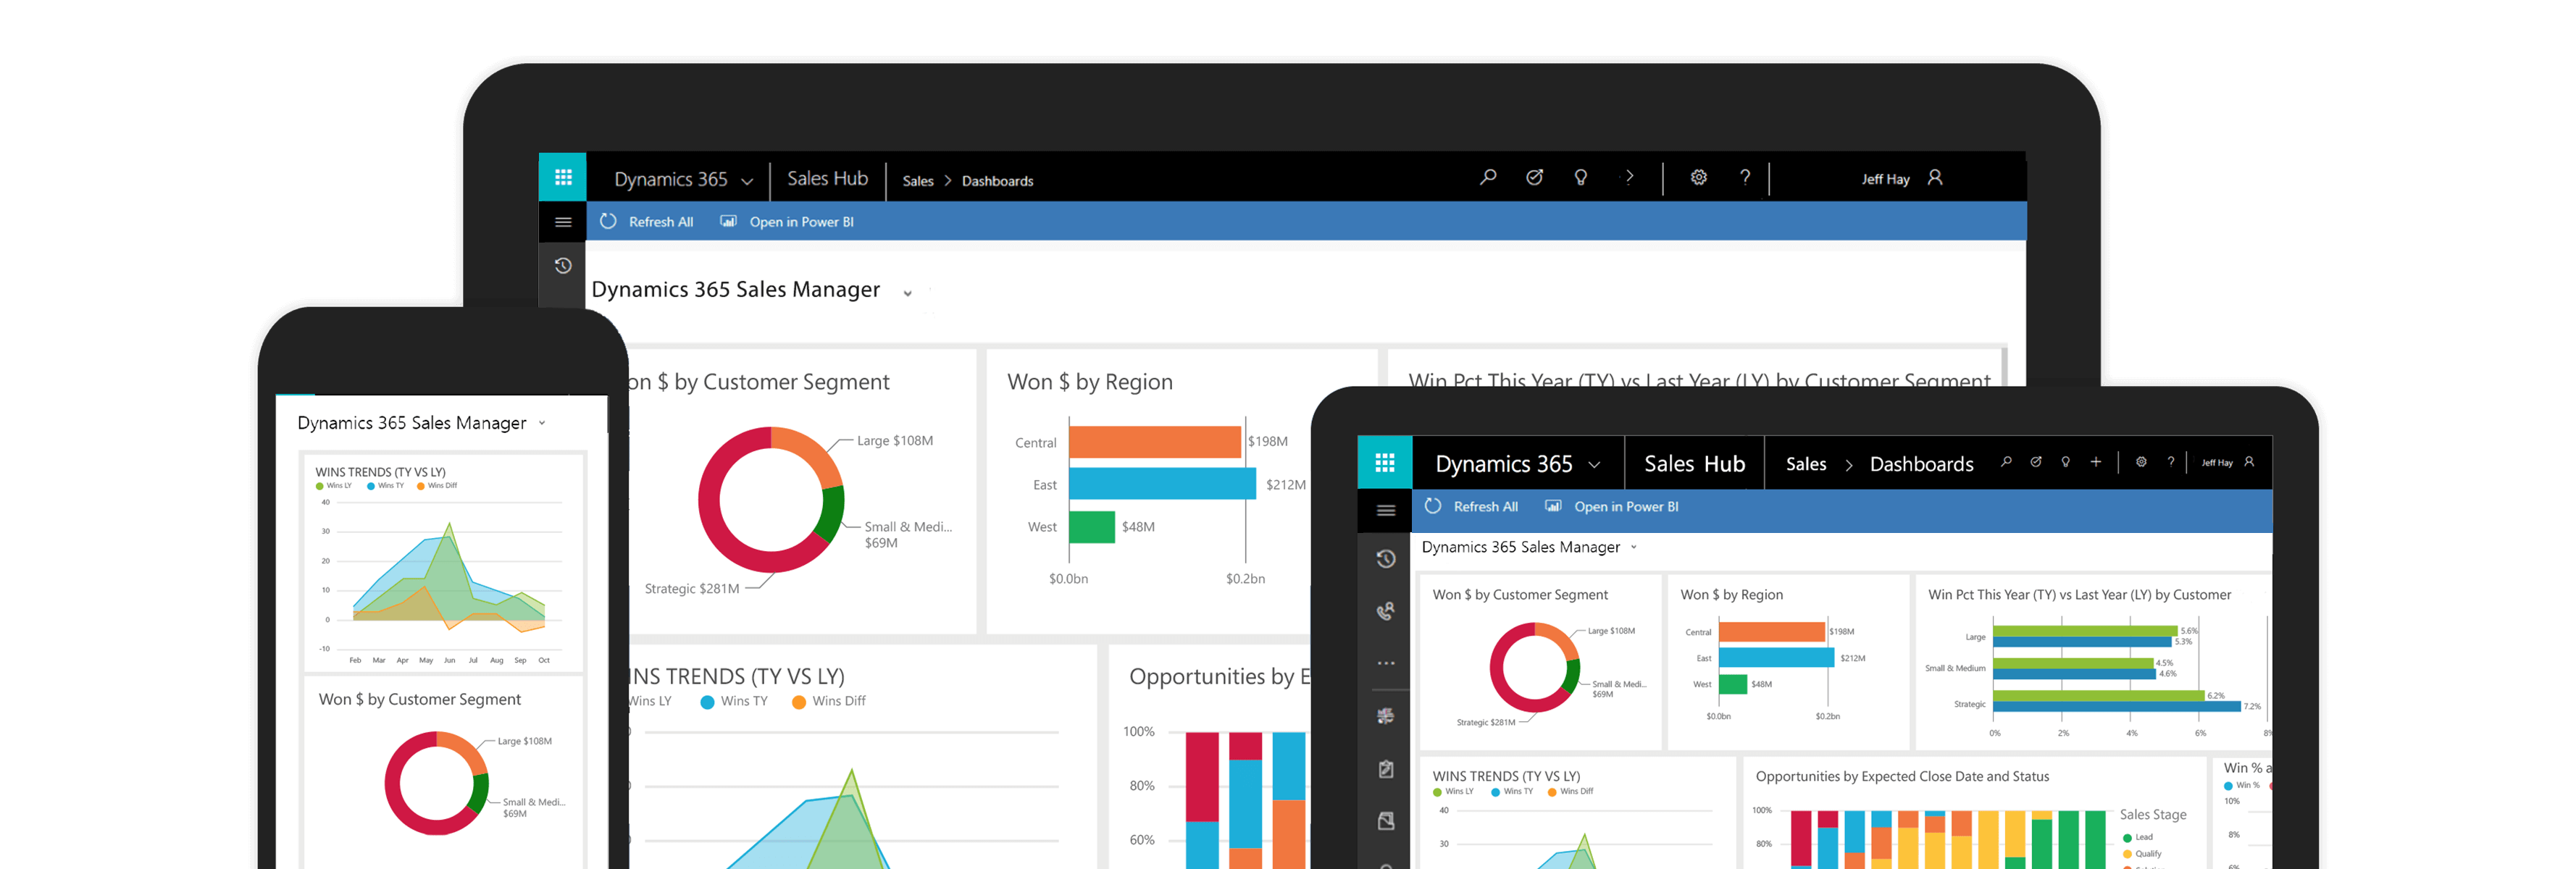 Prova Dynamics 365 for Sales